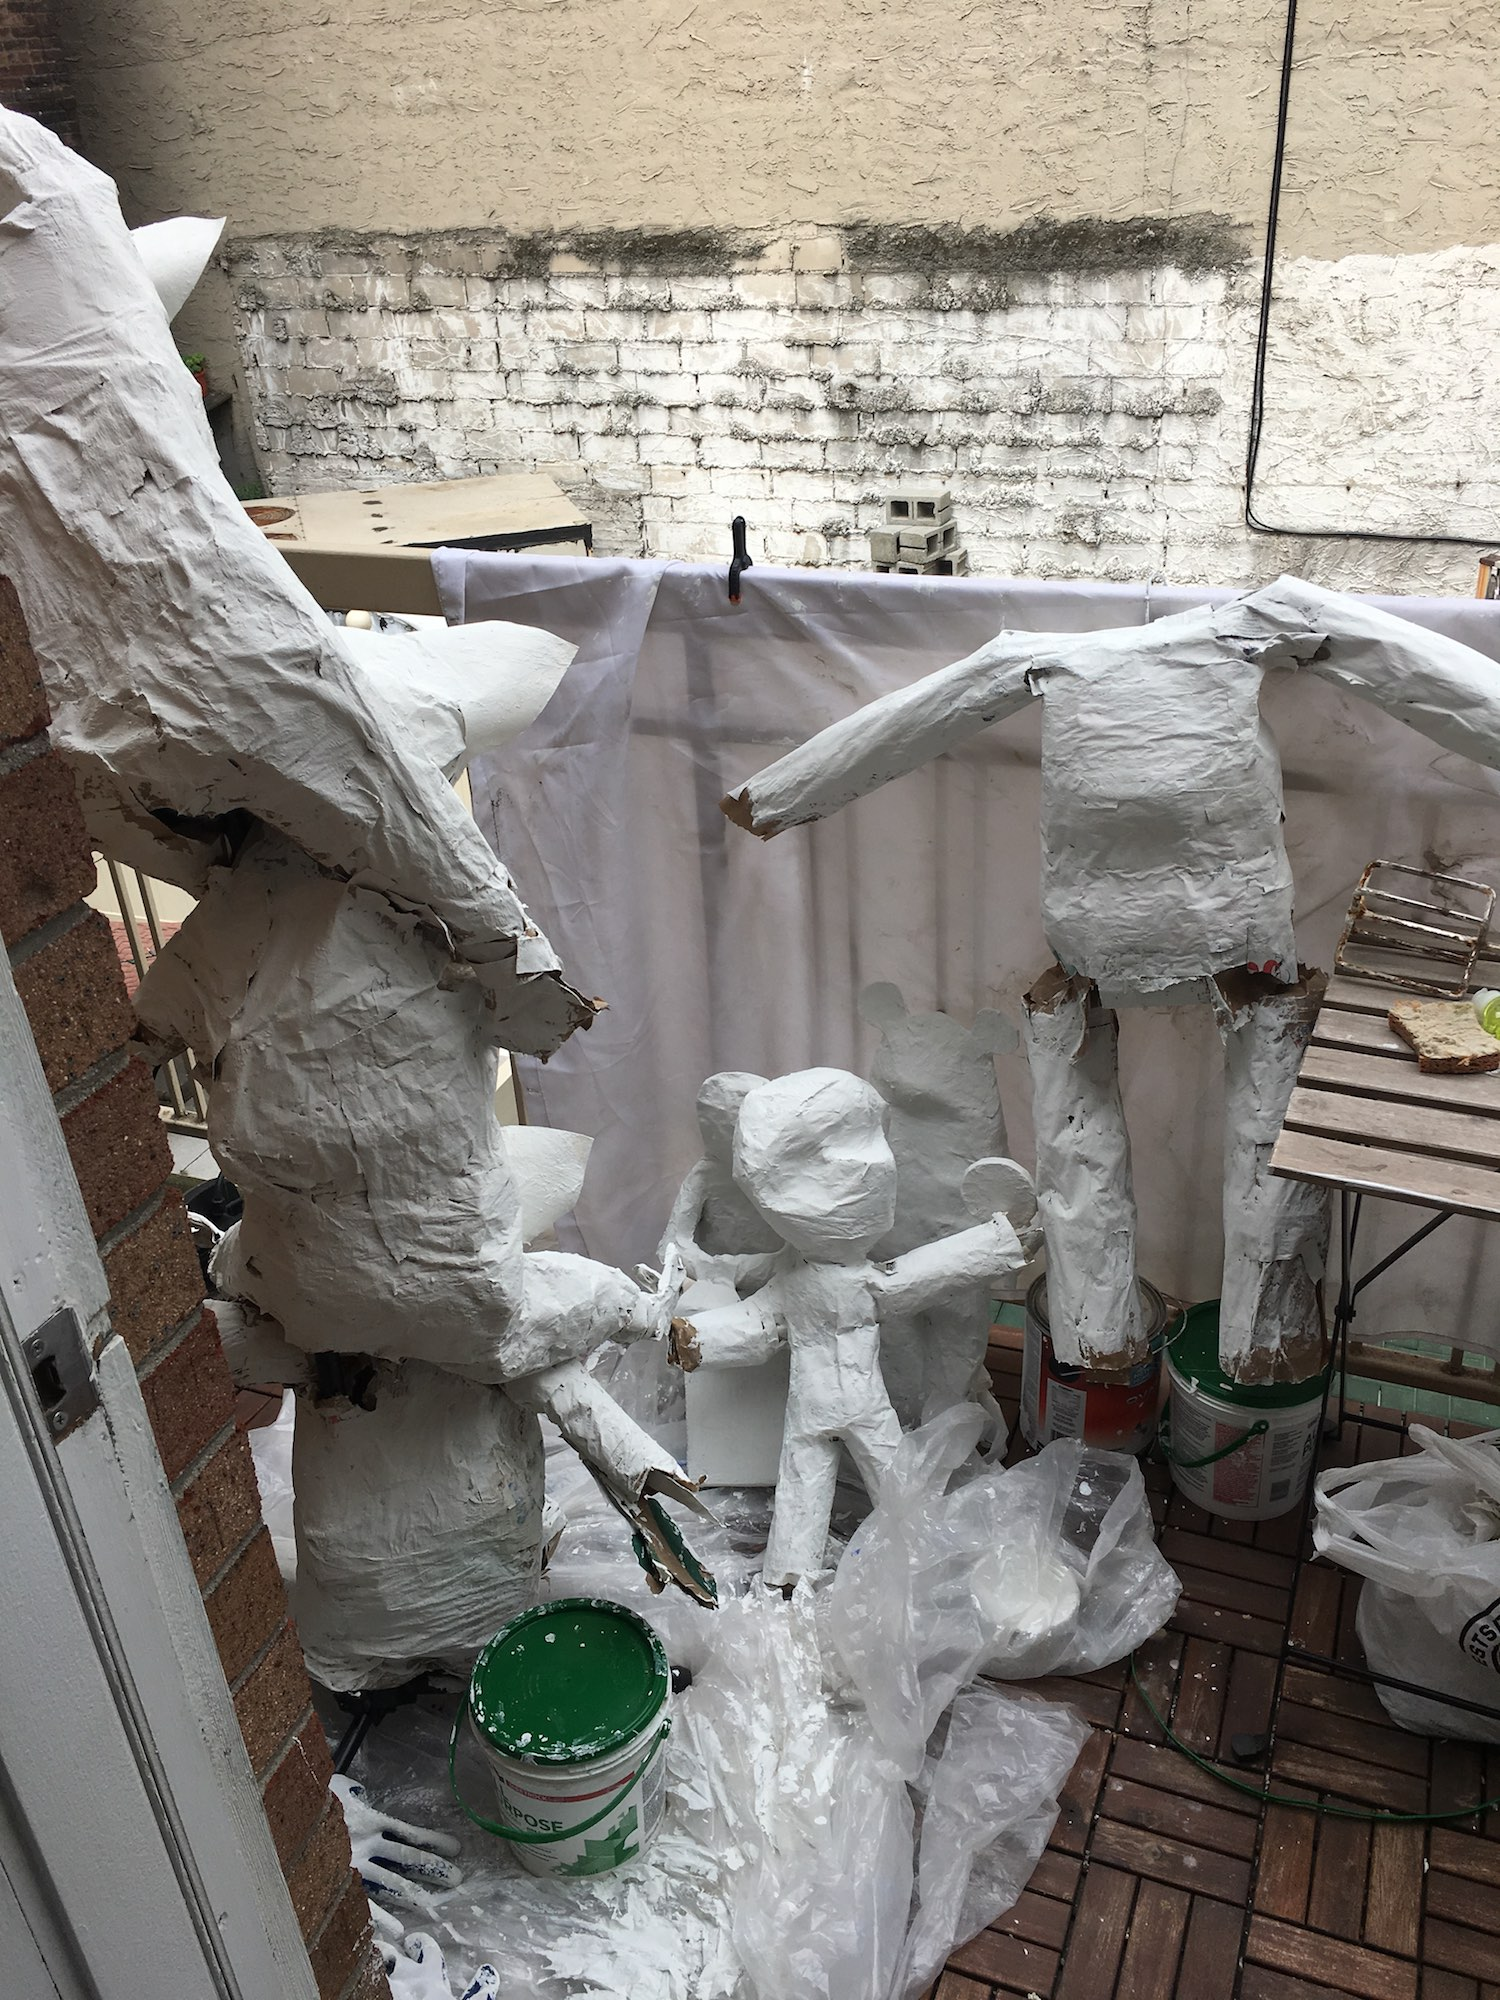 Most of what we've seen so far, now covered in white paint and hanging out on the patio